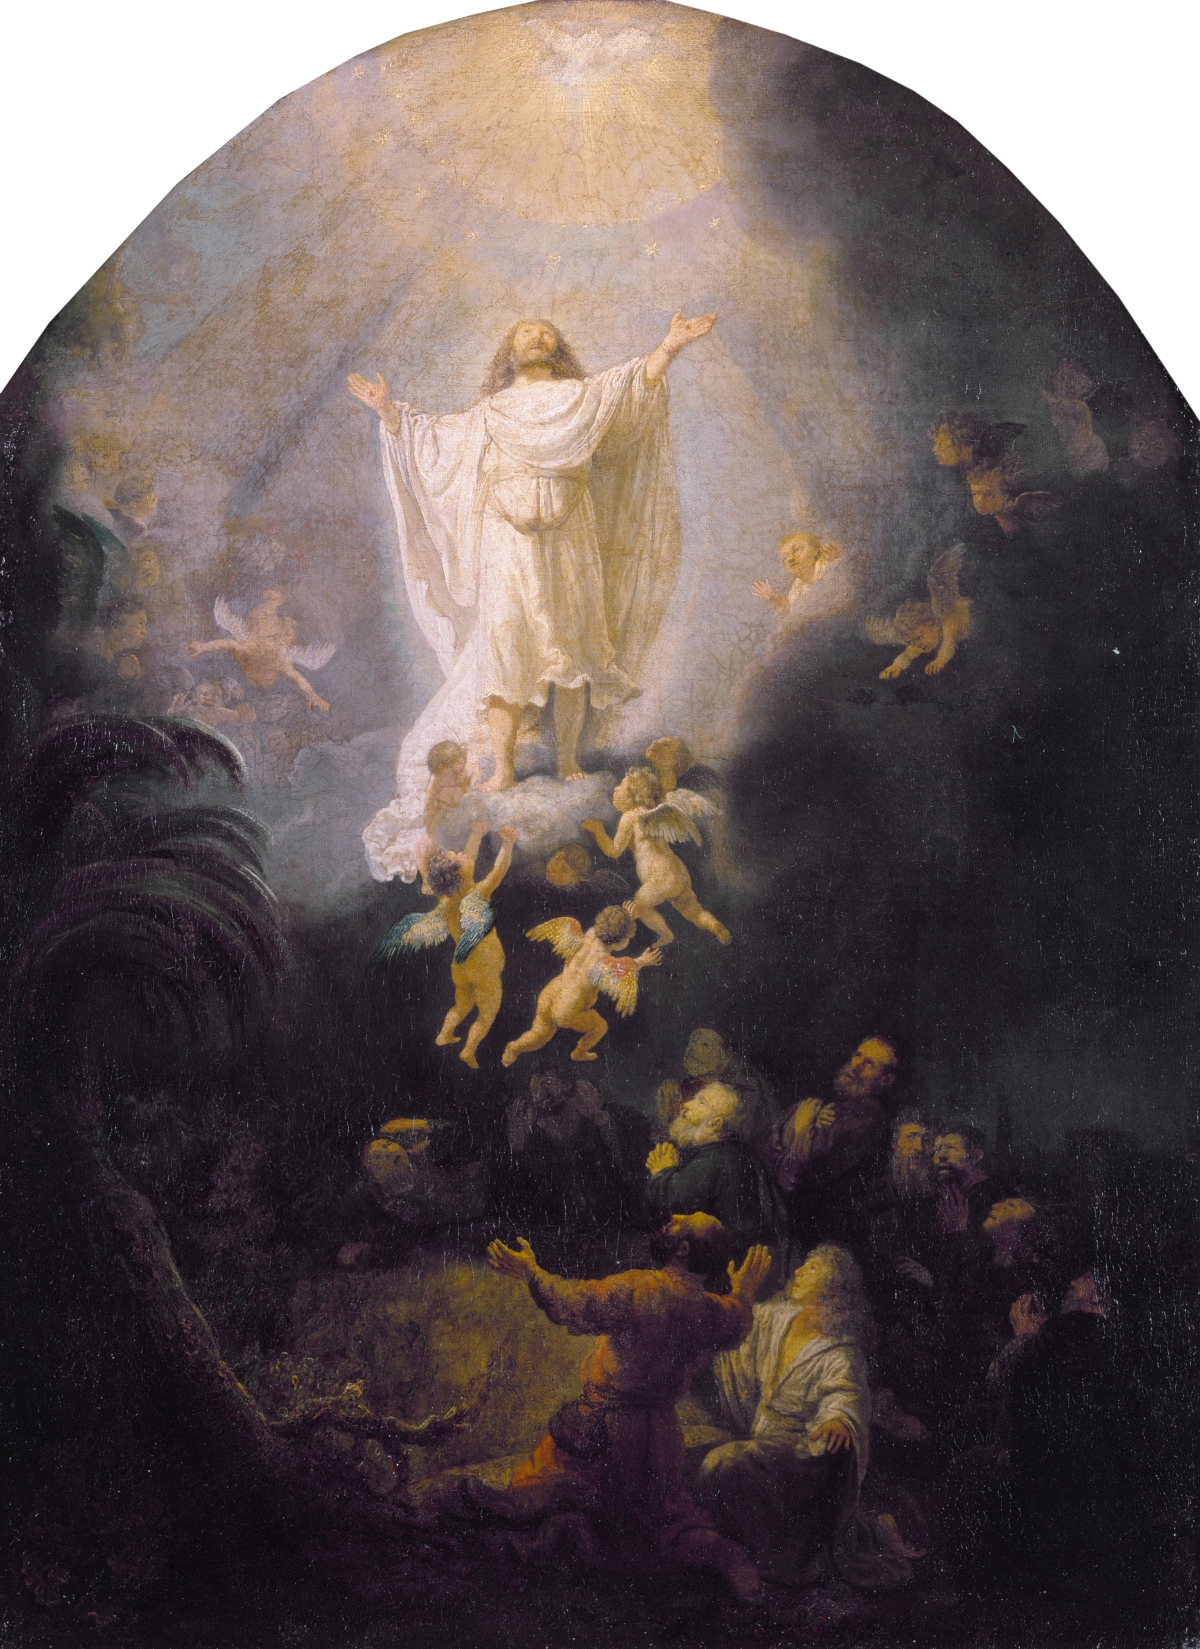 Re-blog – 5 Reasons Why the Ascension of Jesus Matters